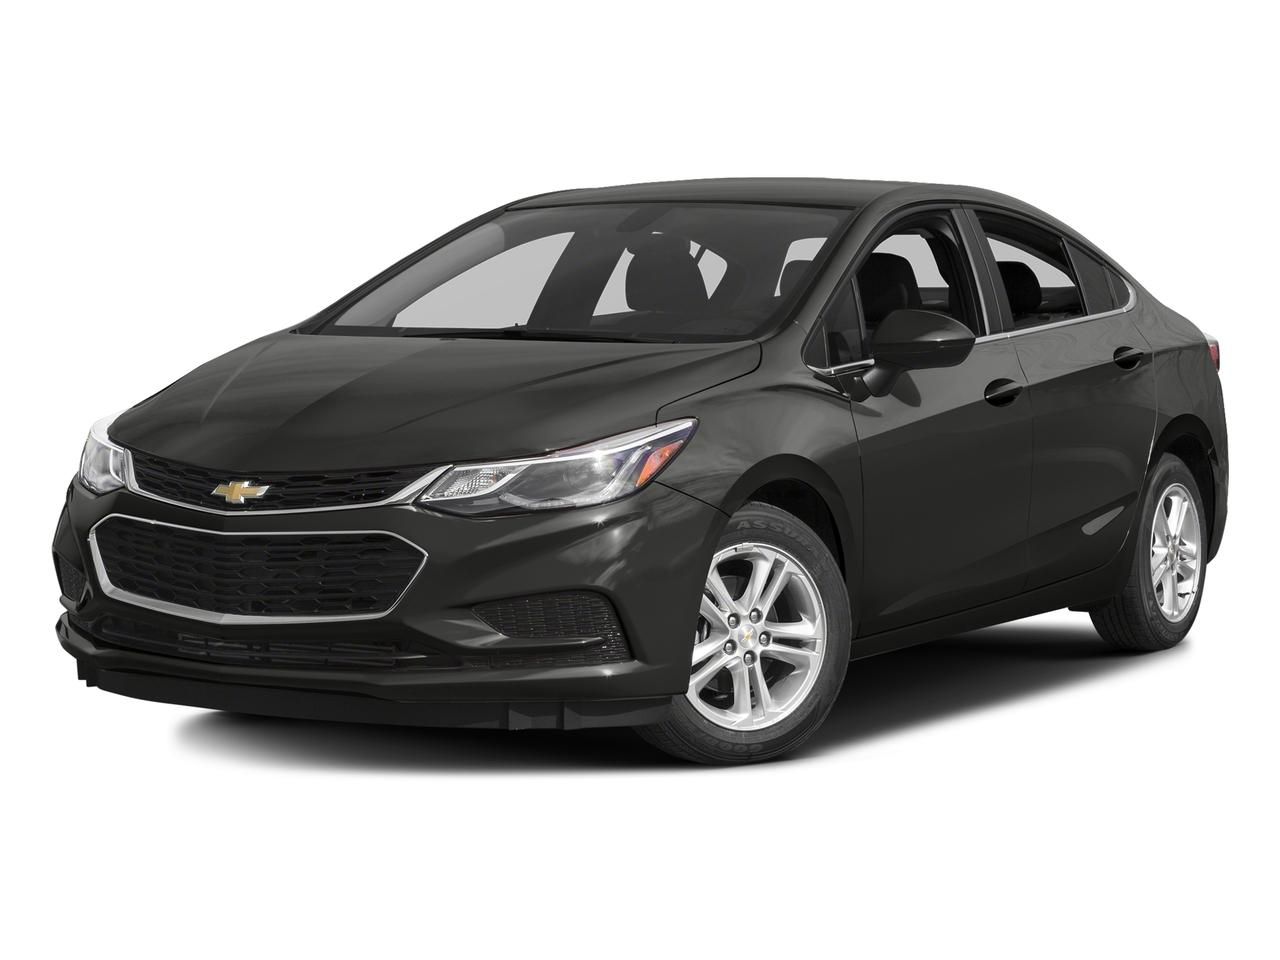 2017 Chevrolet Cruze Vehicle Photo in Saginaw, MI 48609